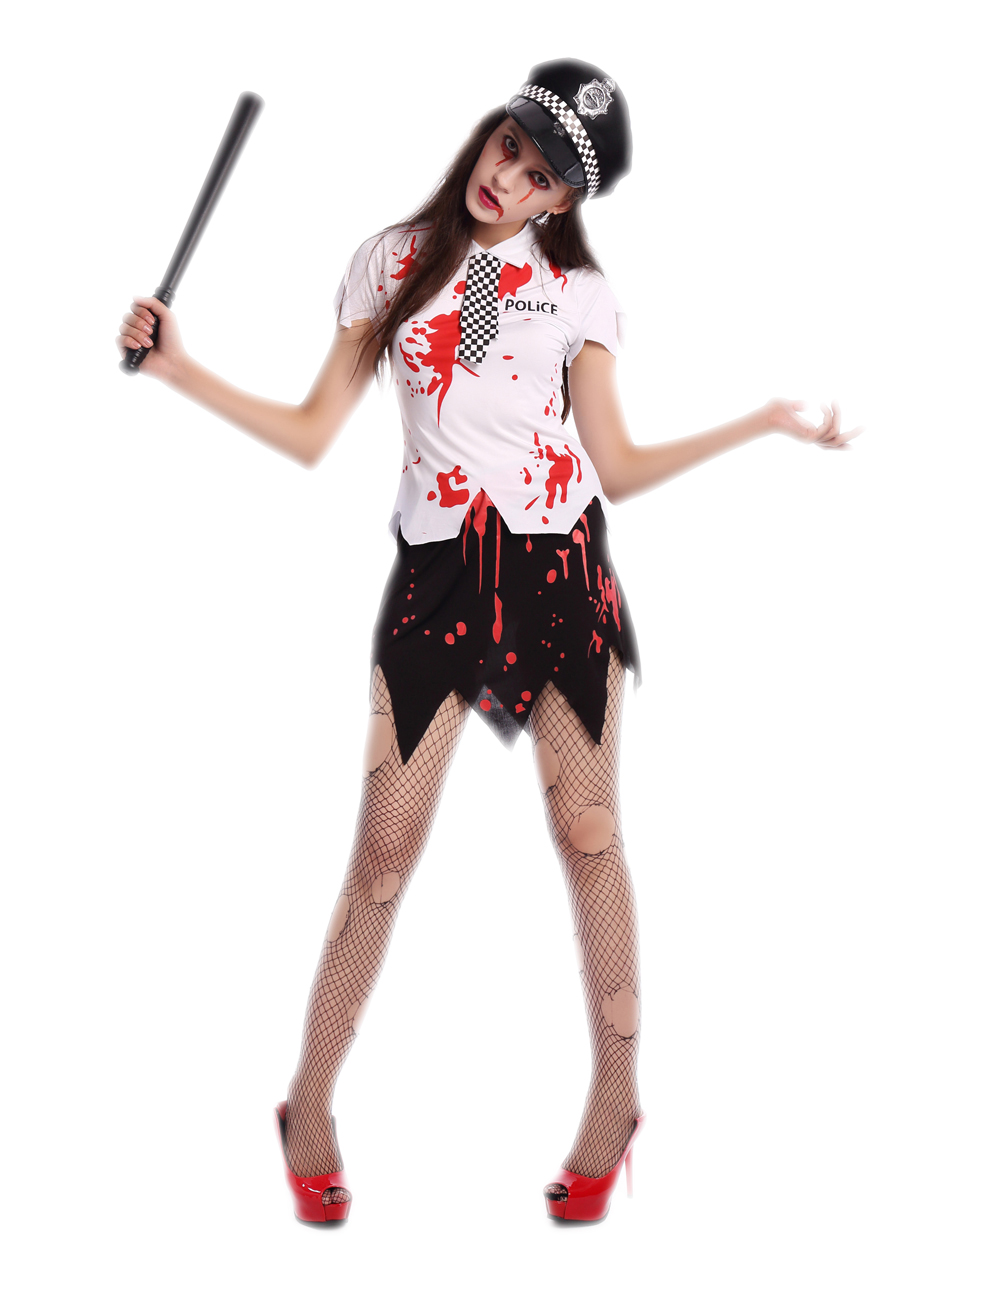 F1689 bloody women zombie police costume,it comes with hat,topwear,skirt